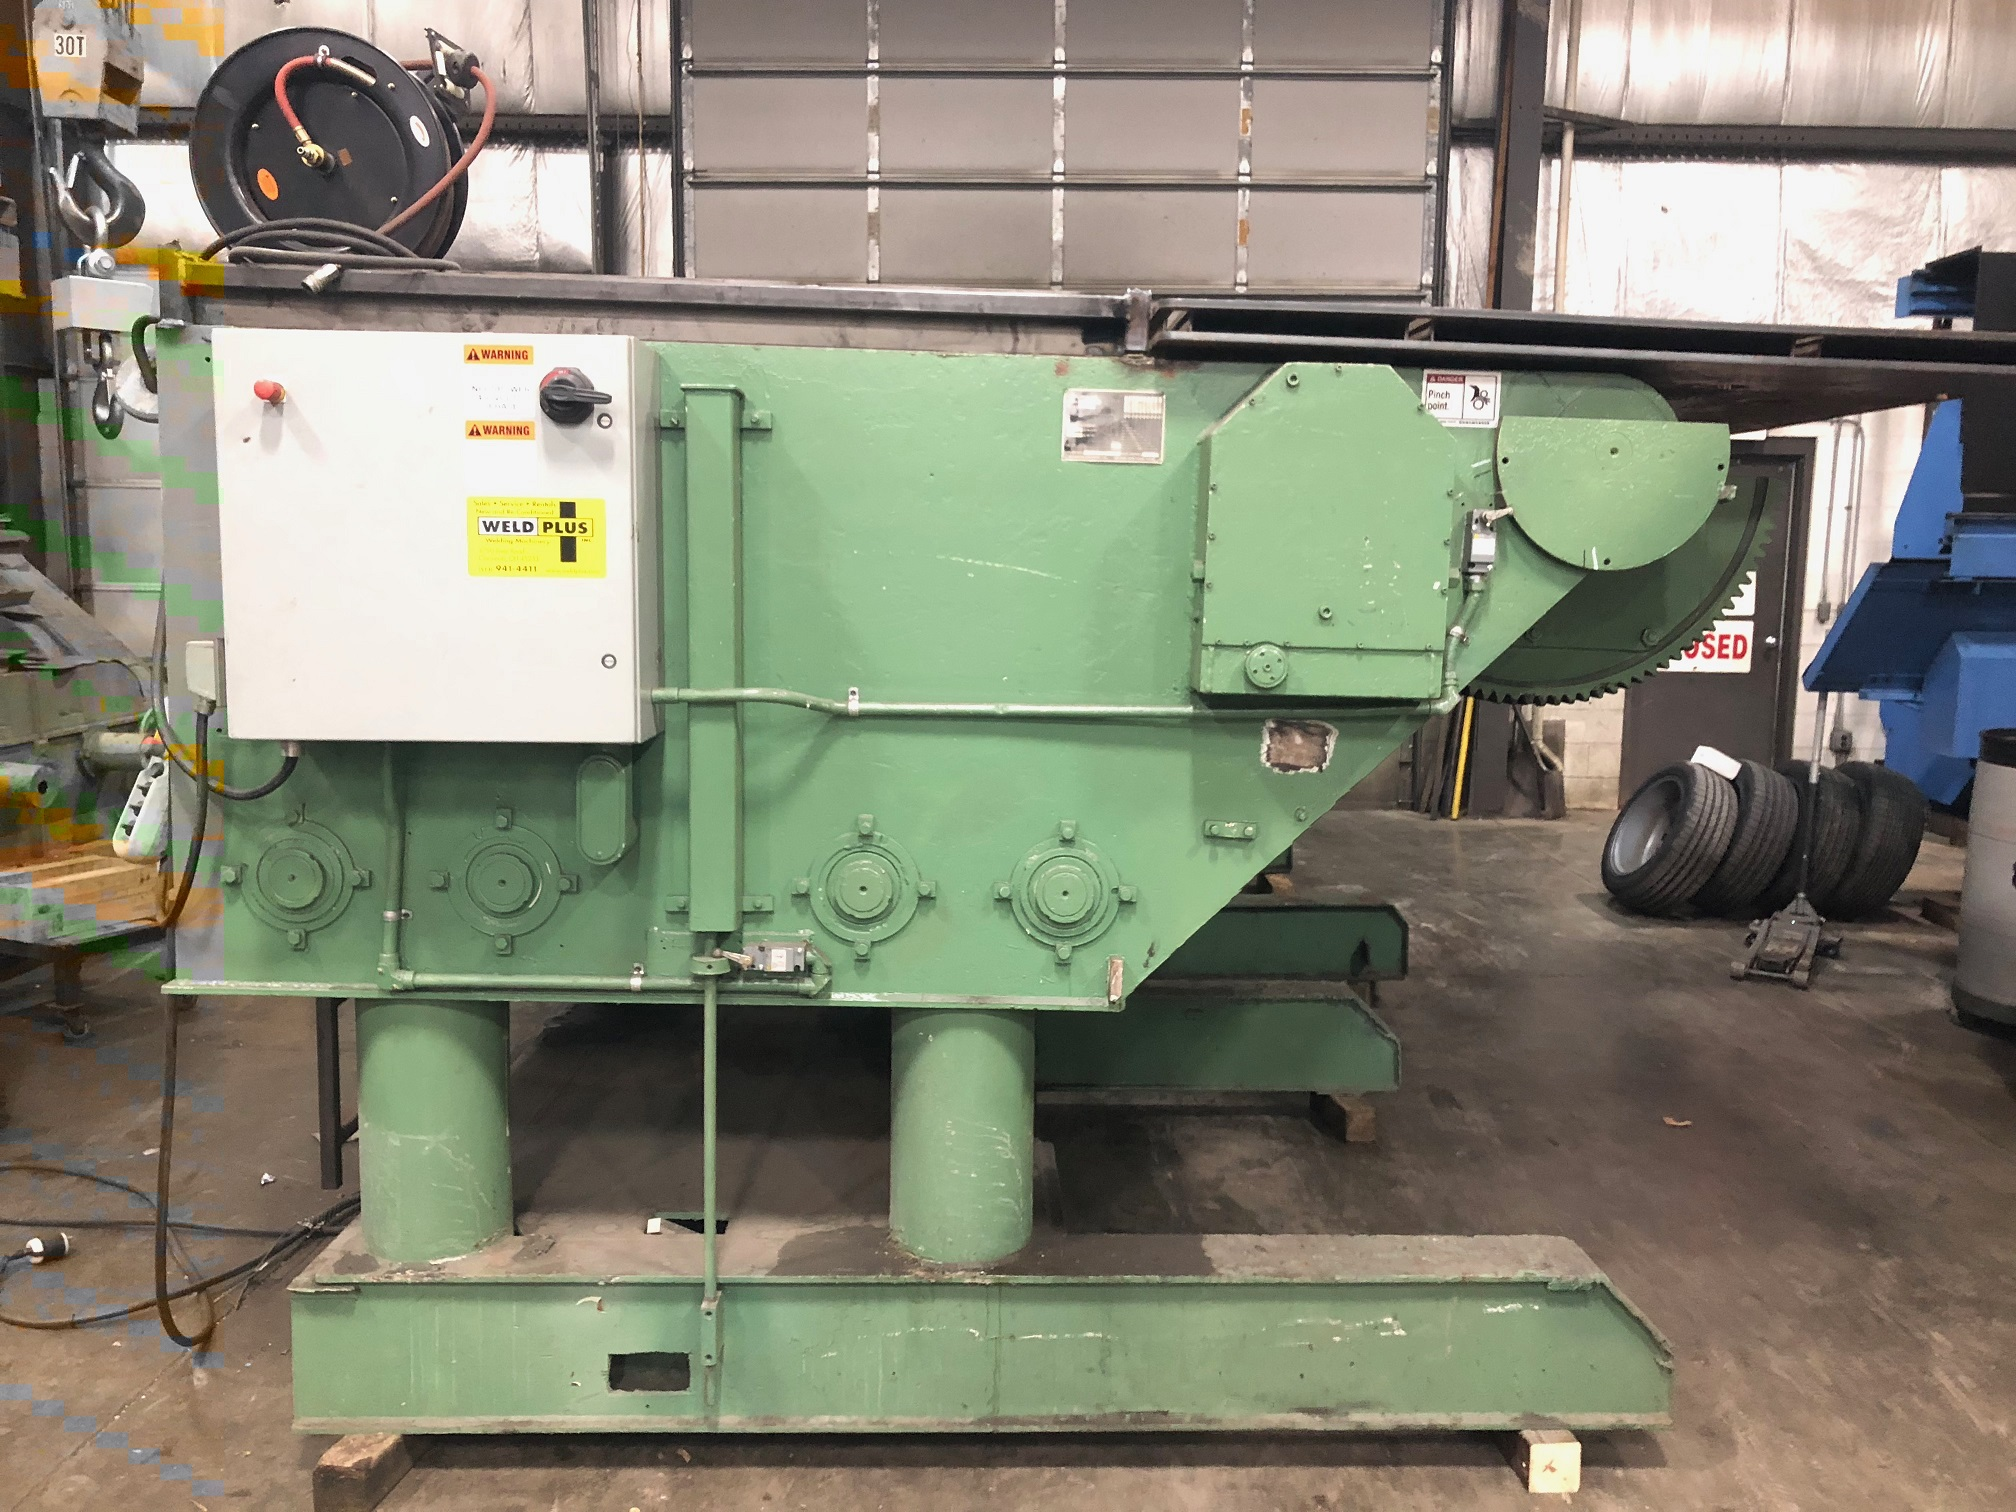 25,000 ARONSON GE-250, REBUILT 2017, 60 X 84 TABLE, POWER TILT, POWER ELEVATION, PENDANT CONTROL